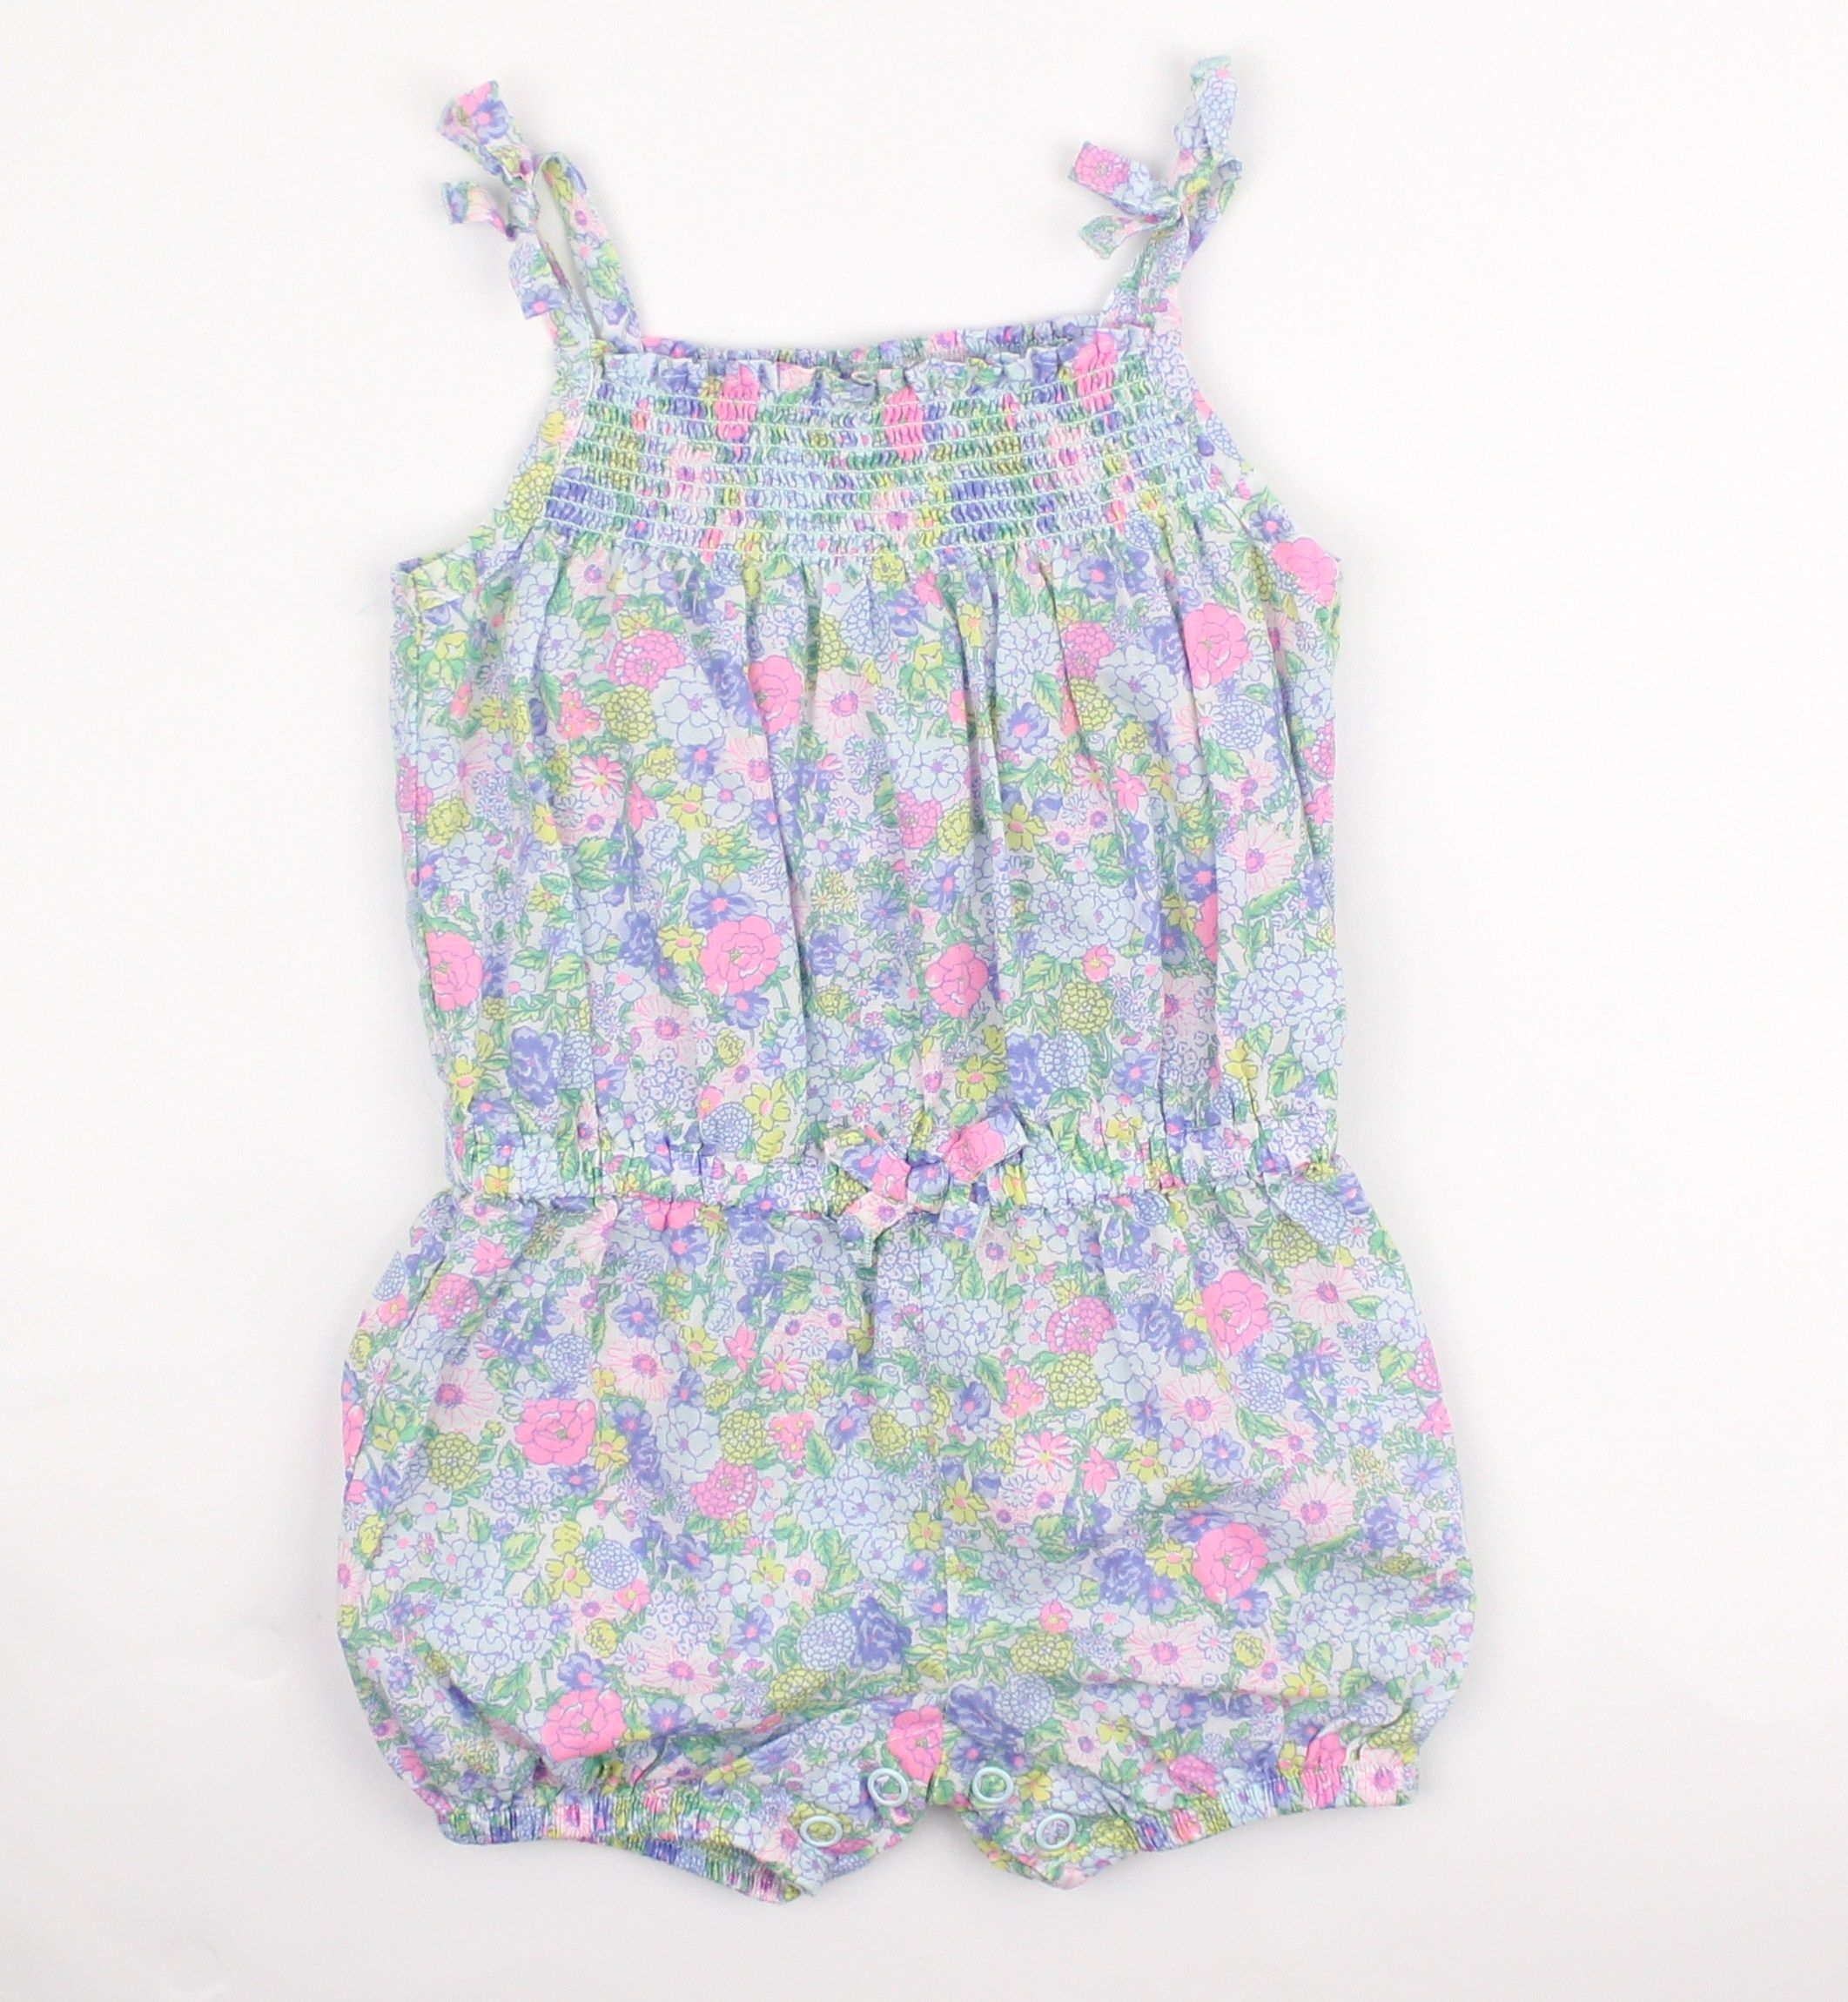 Baby Girl Floral Romper by Carters in Size 6 Months and ly $4 50